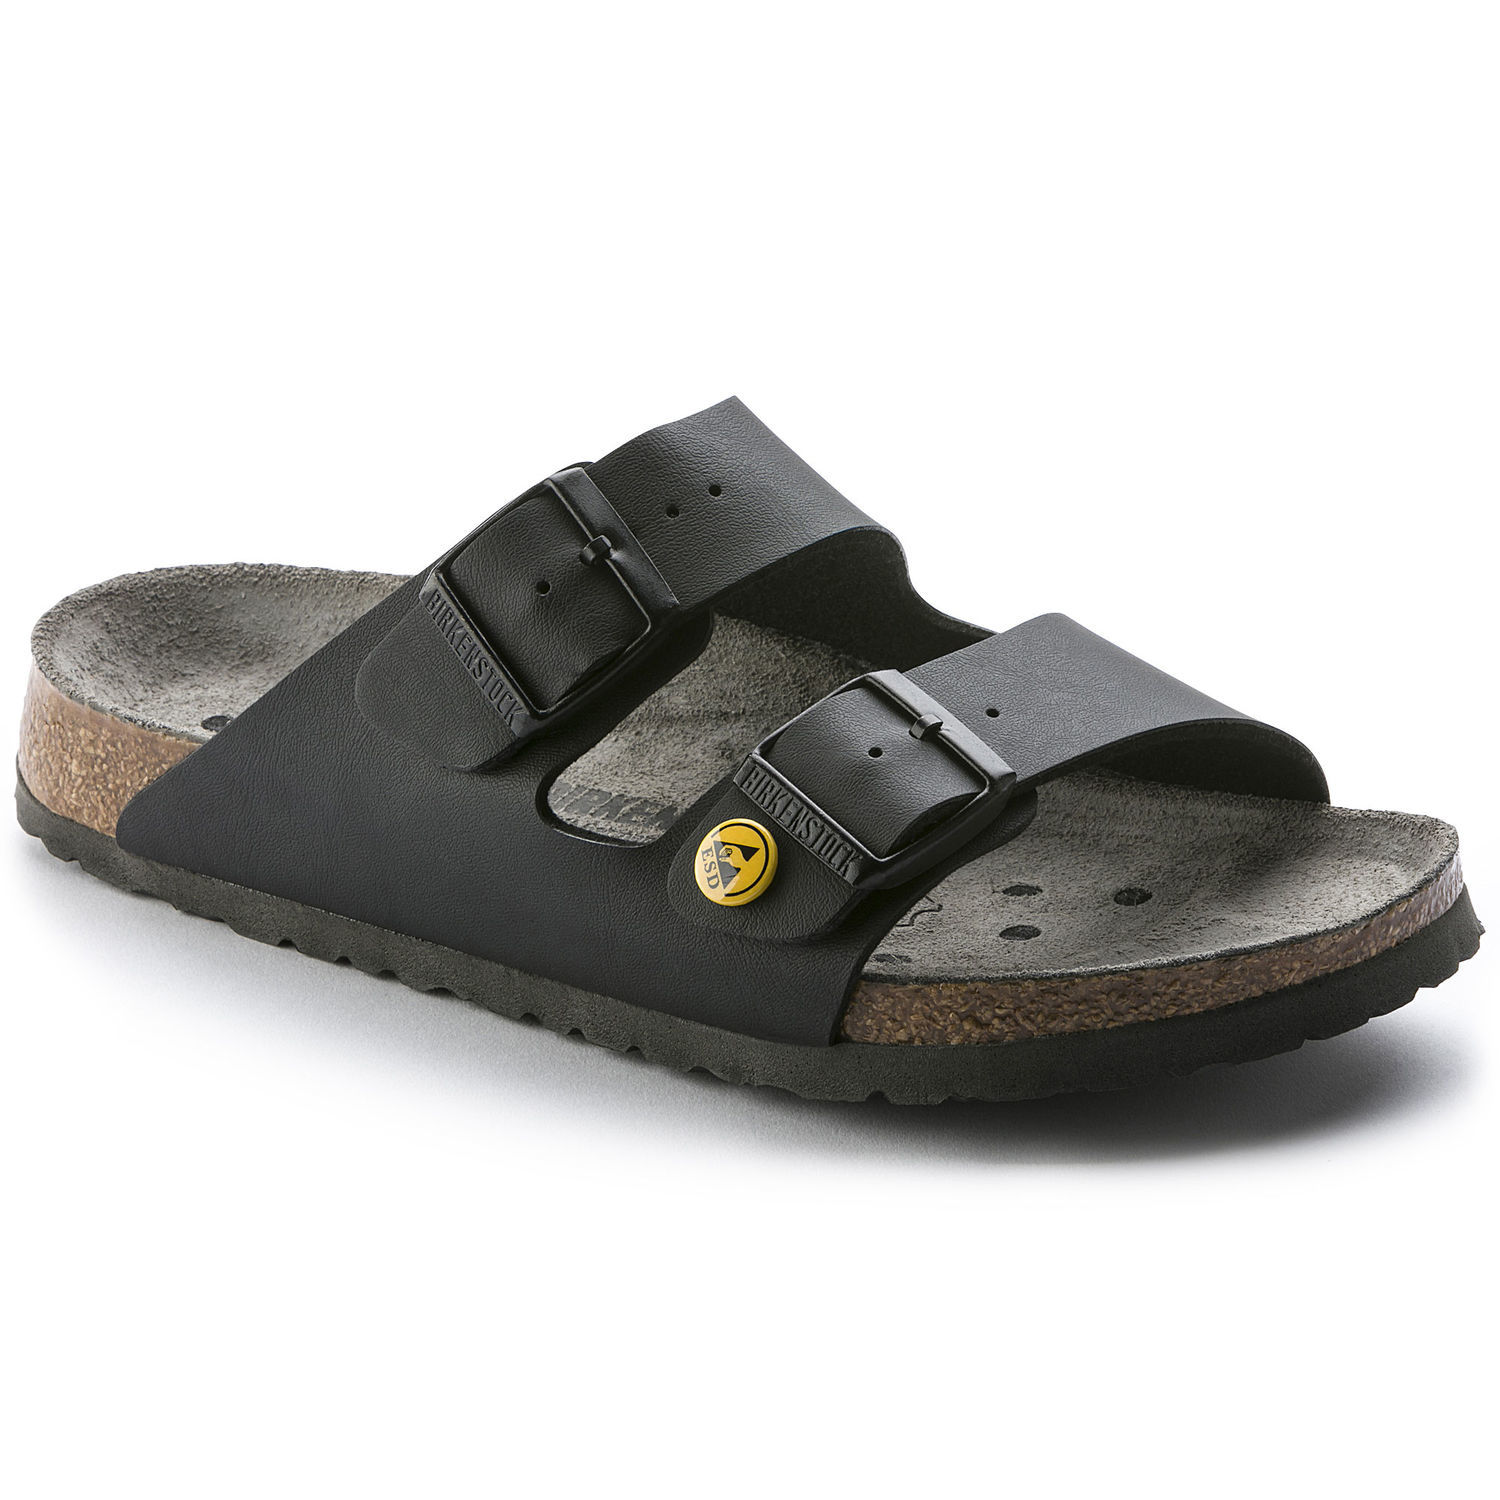 Image of   Sort Arizona ESD sandal fra Birkenstock - 41